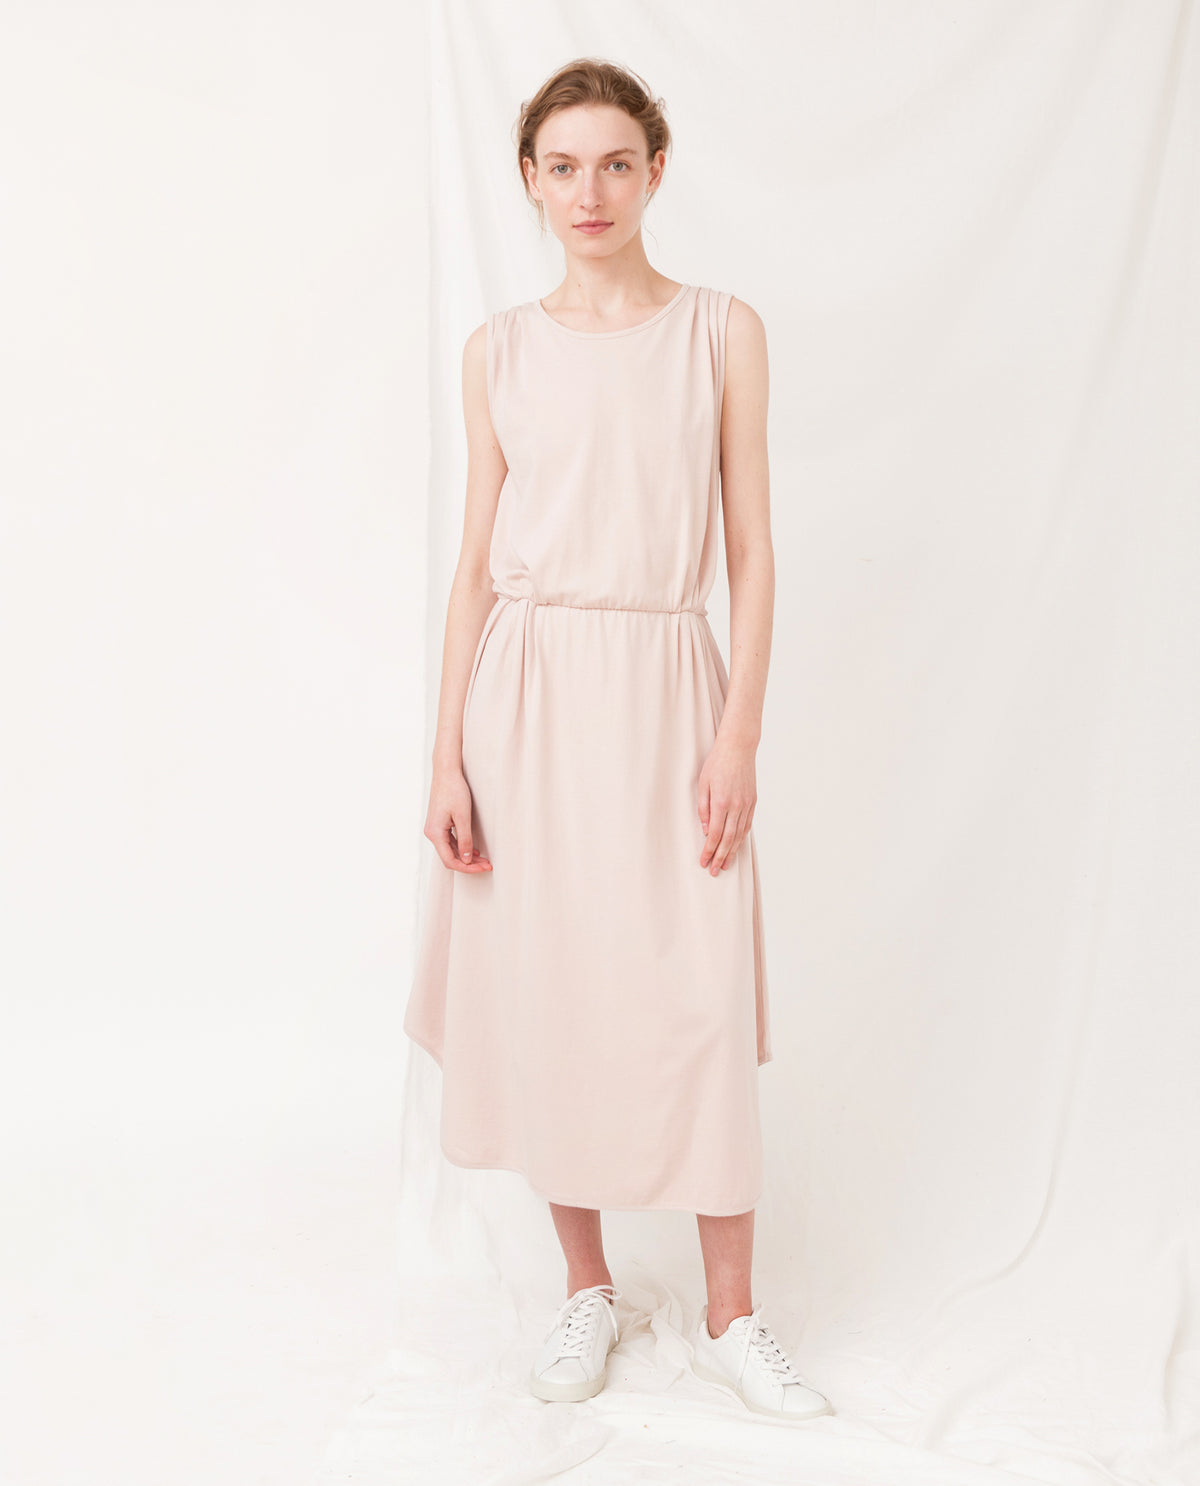 MULBERRY Organic Cotton Dress In Pink